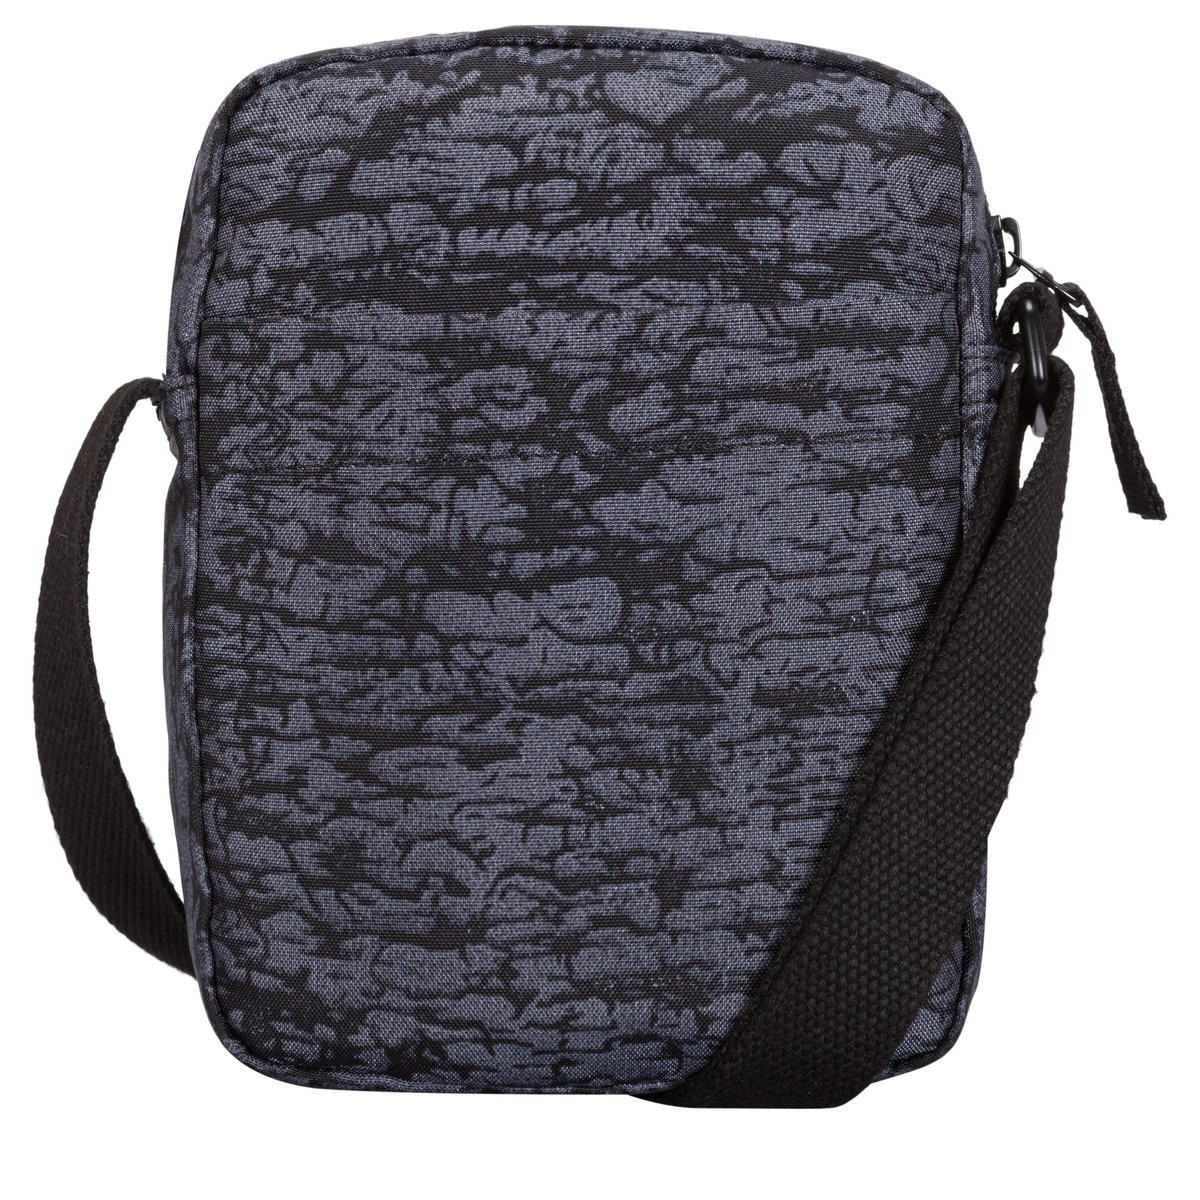 Small Zip Top Cross Body - Reef Fabric